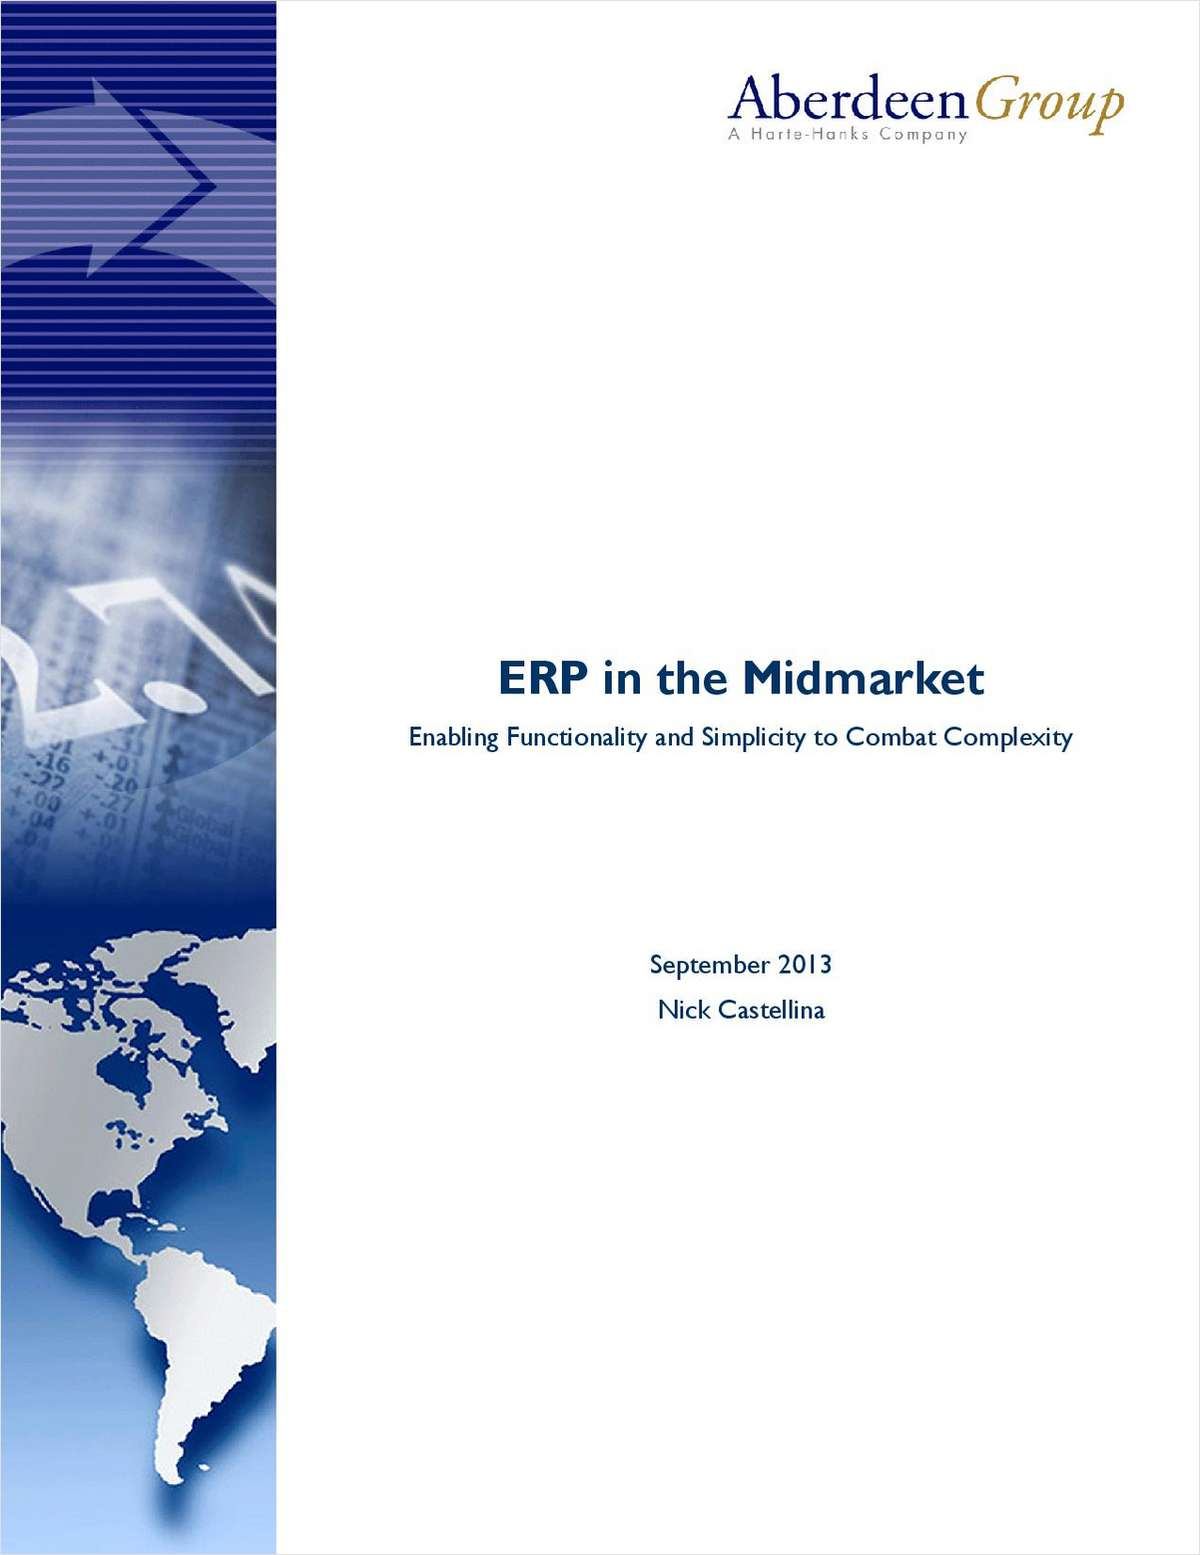 ERP in the Midmarket: Enabling Functionality and Simplicity to Combat Complexity